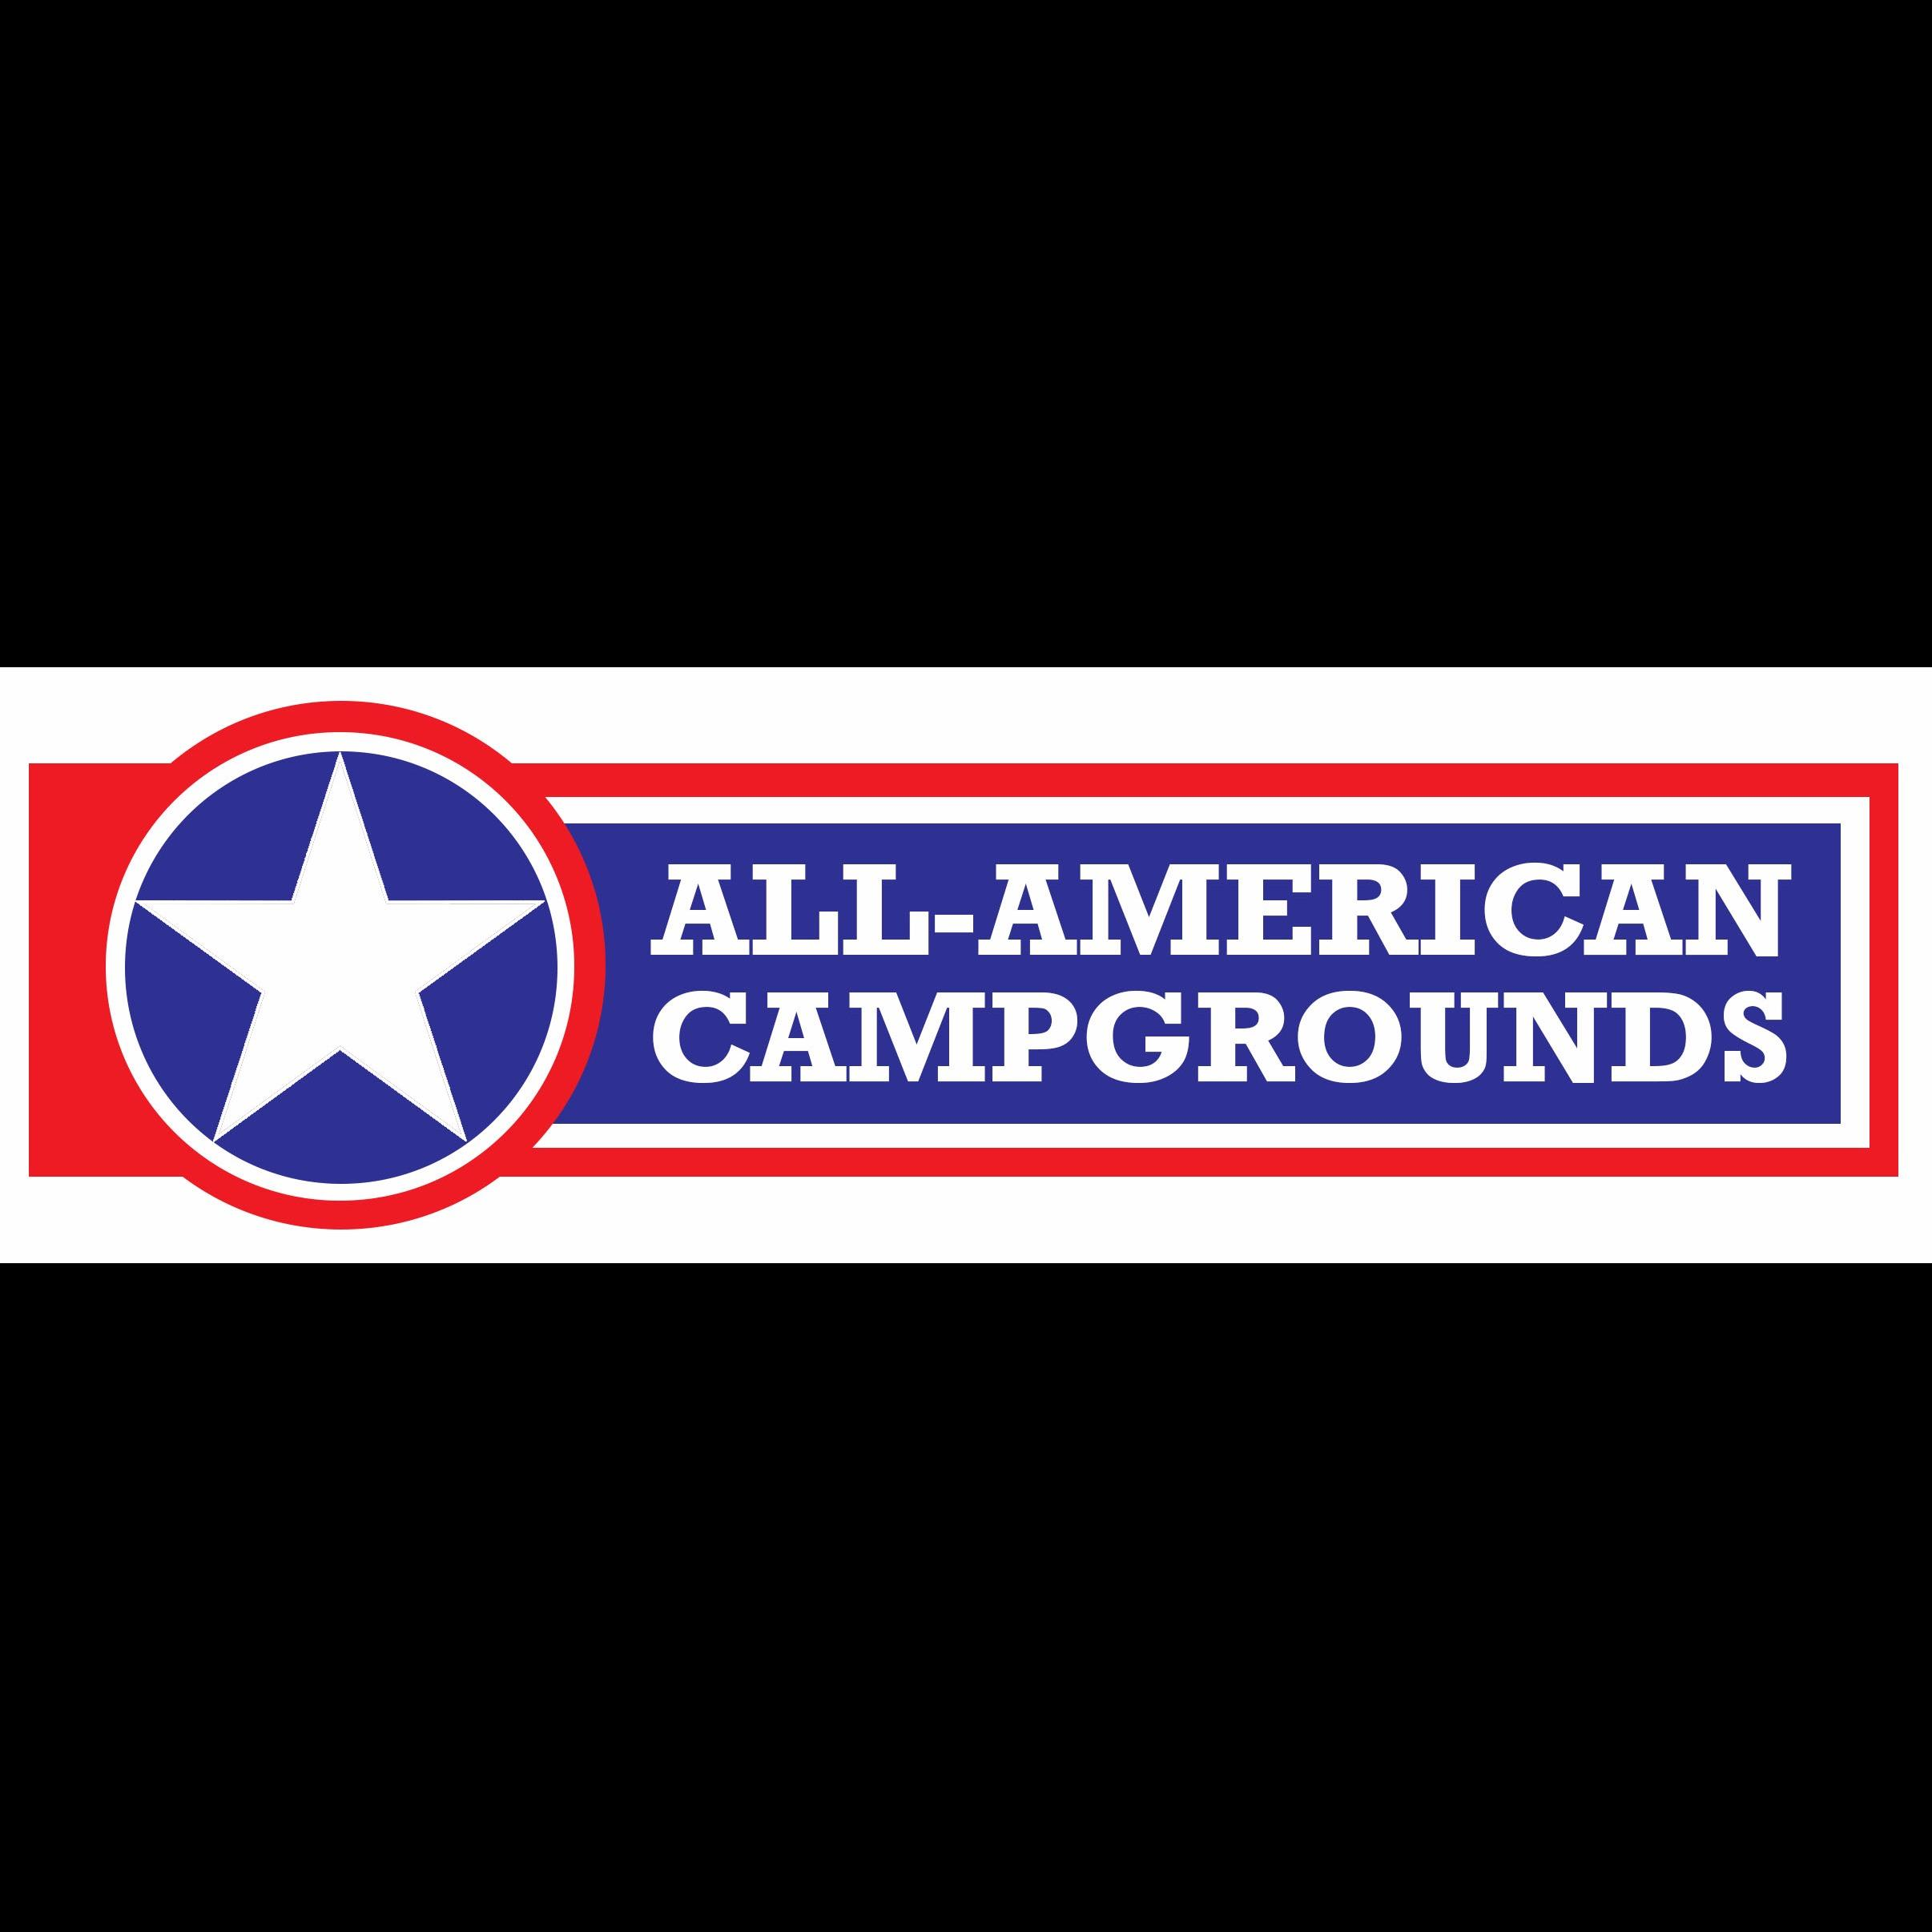 All American Campgrounds